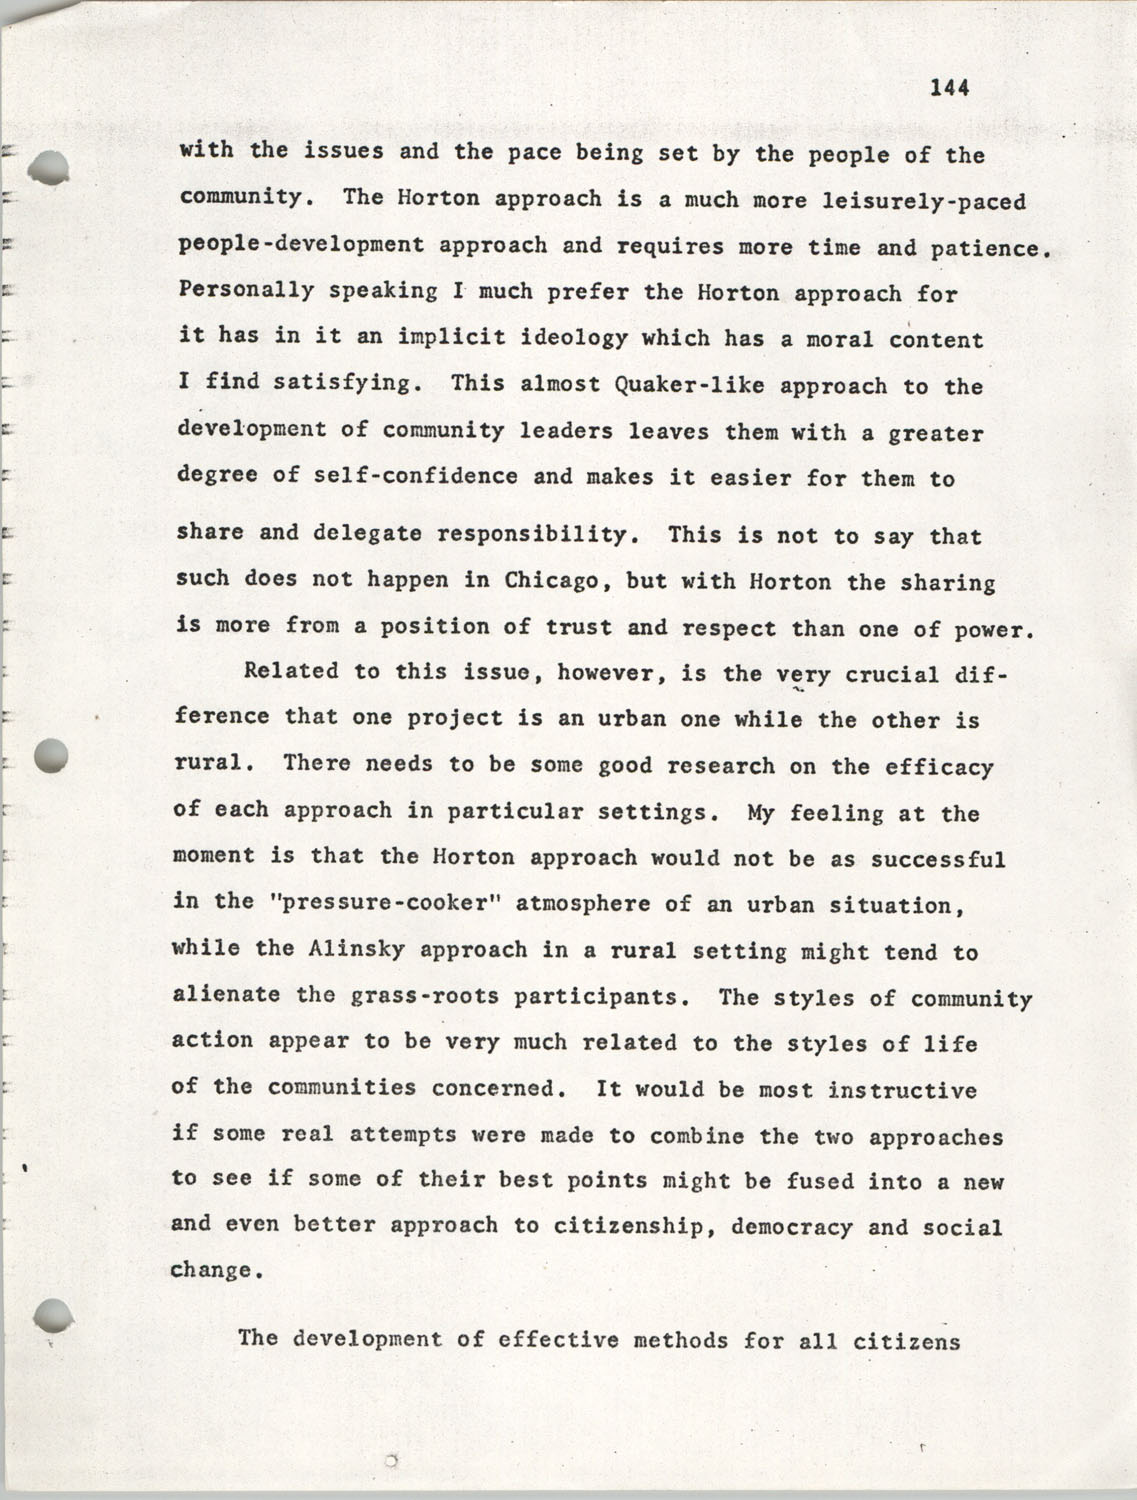 Citizen Participation. Democracy and Social Change, December 1, 1969, Page 144